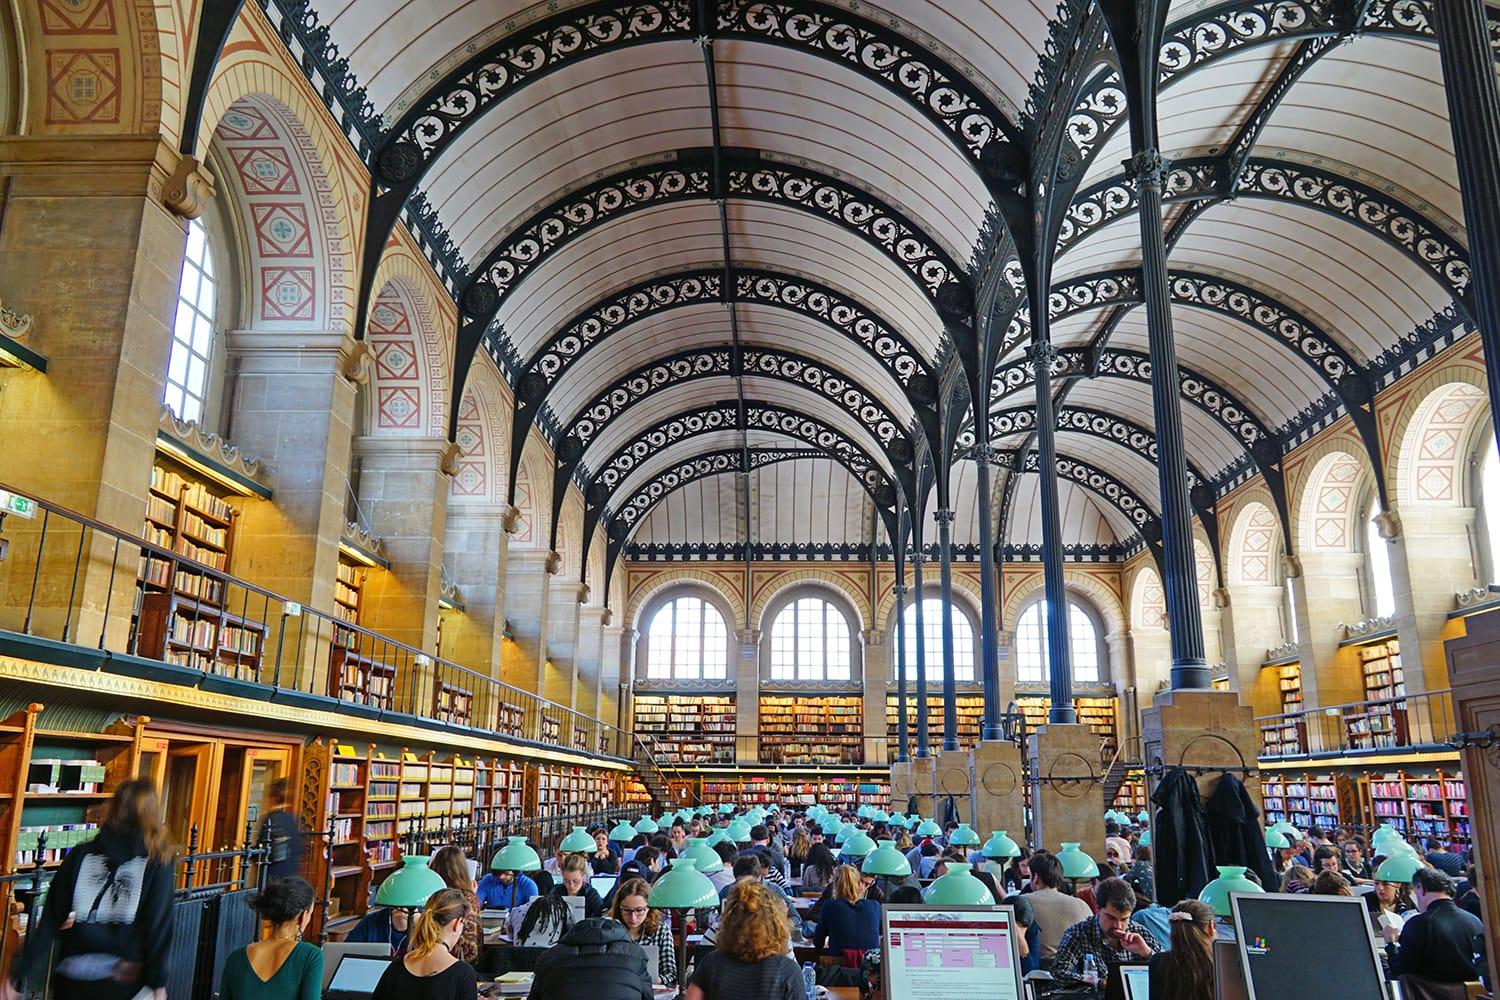 The Bibliotheque Sainte-Genevieve is a landmark public library in the fifth arrondissement of Paris, France